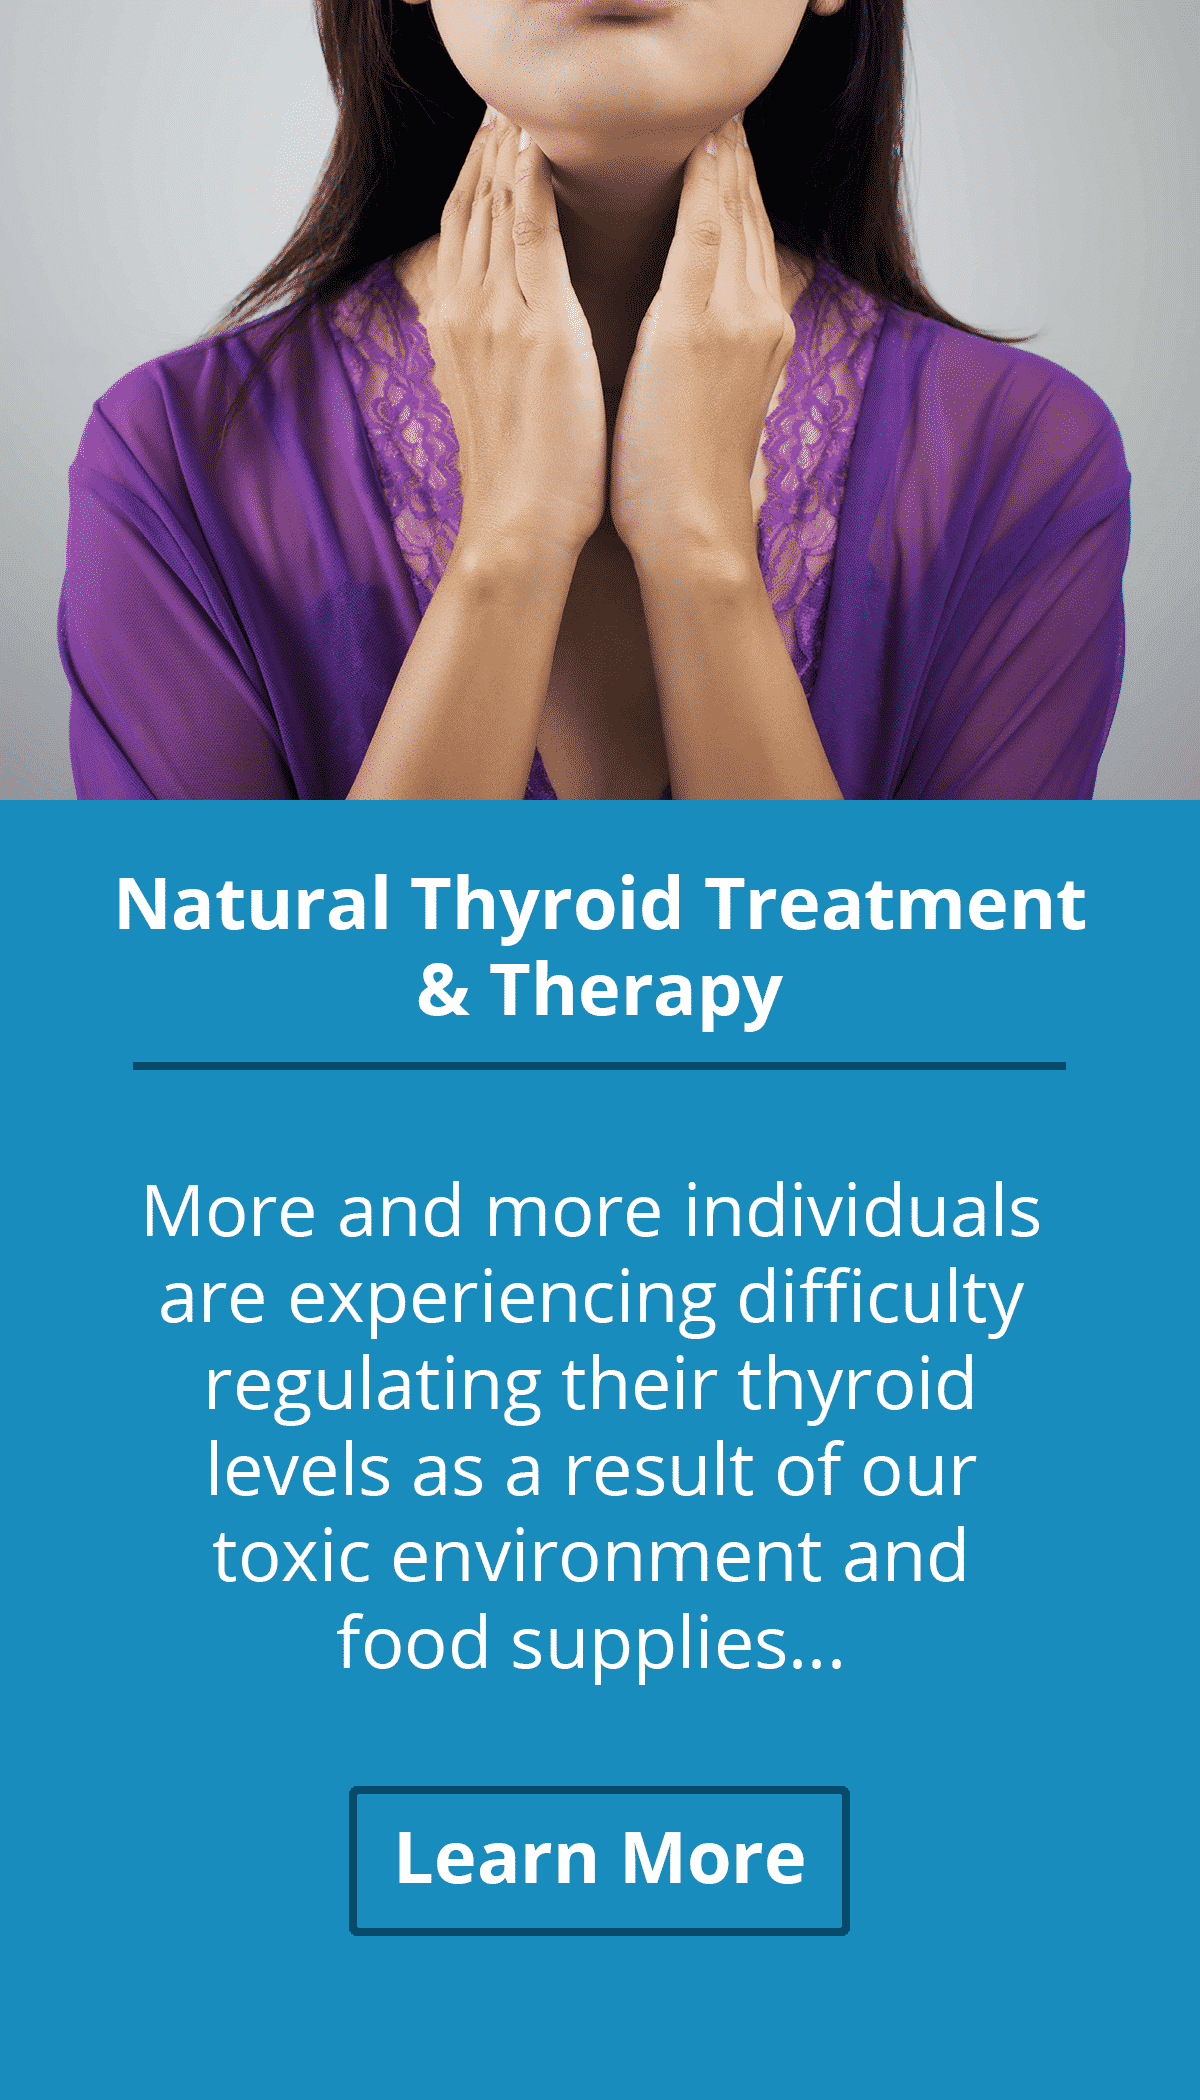 Highlight of Thyroid Treatment and Therapy and what an internist can do.